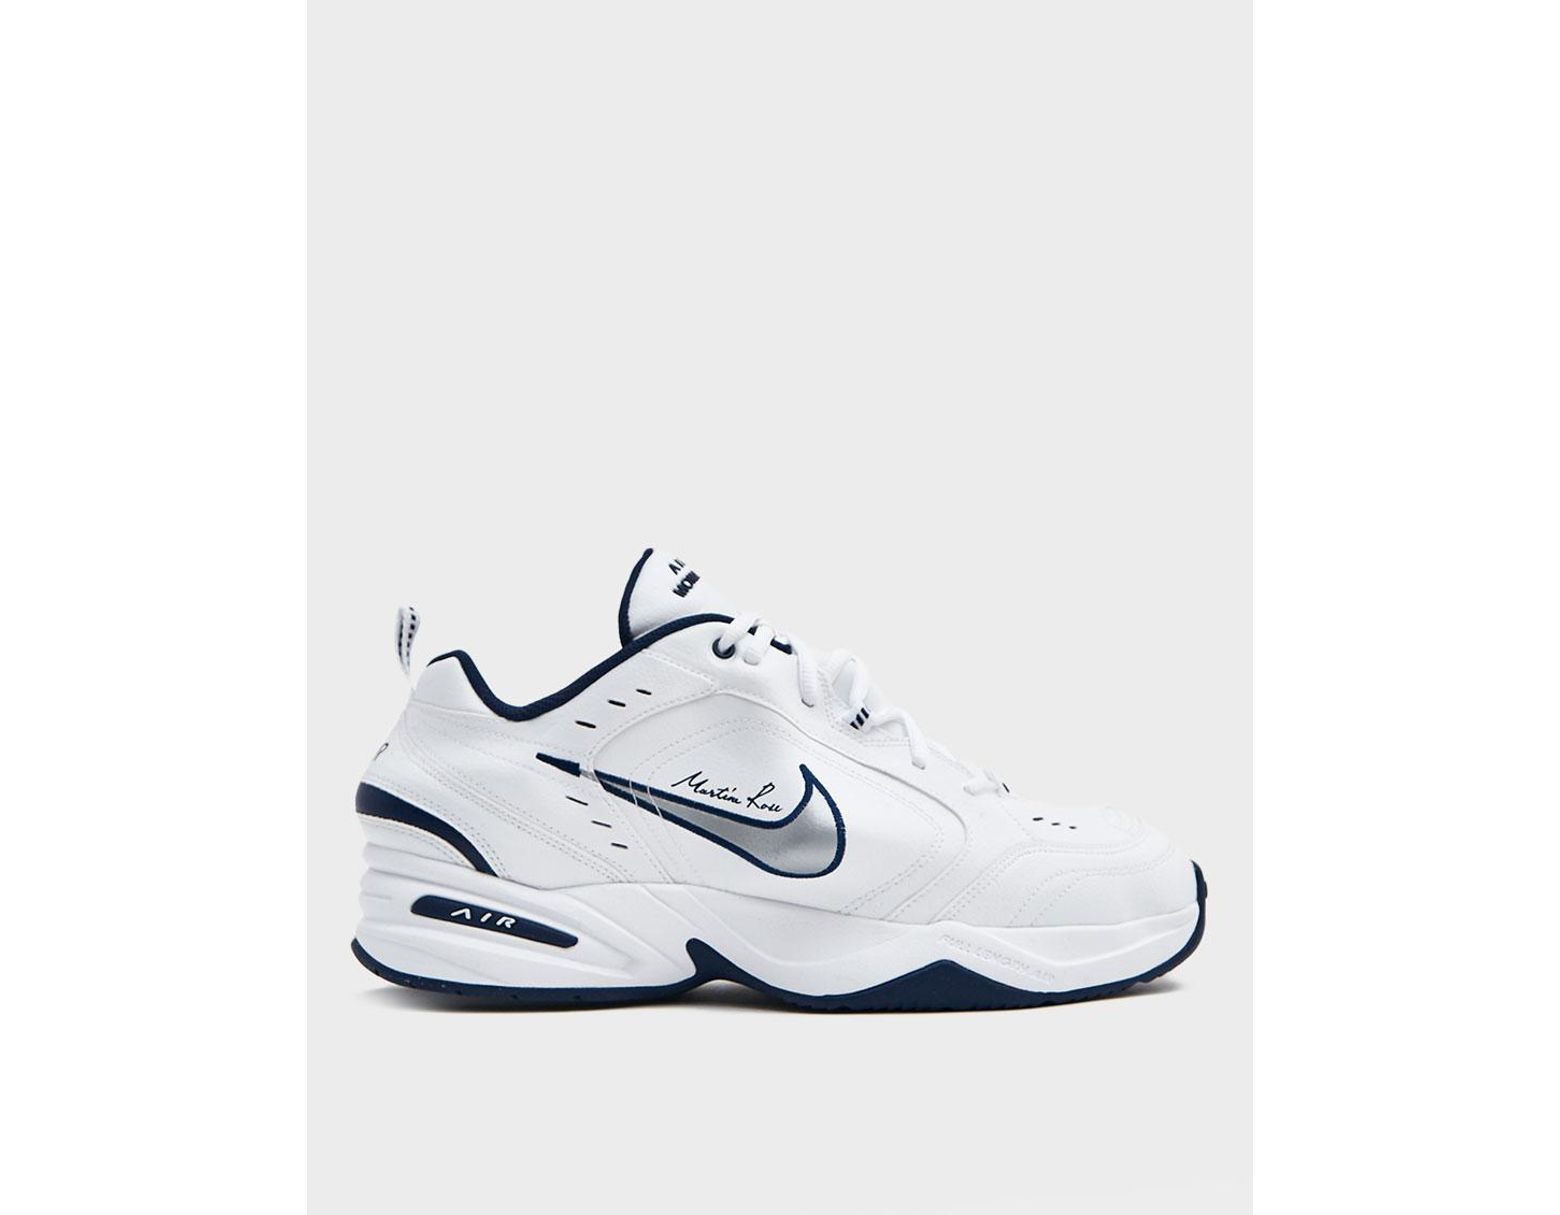 70aa0fcad Nike Martine Rose Air Monarch Iv Sneaker for Men - Save 40% - Lyst